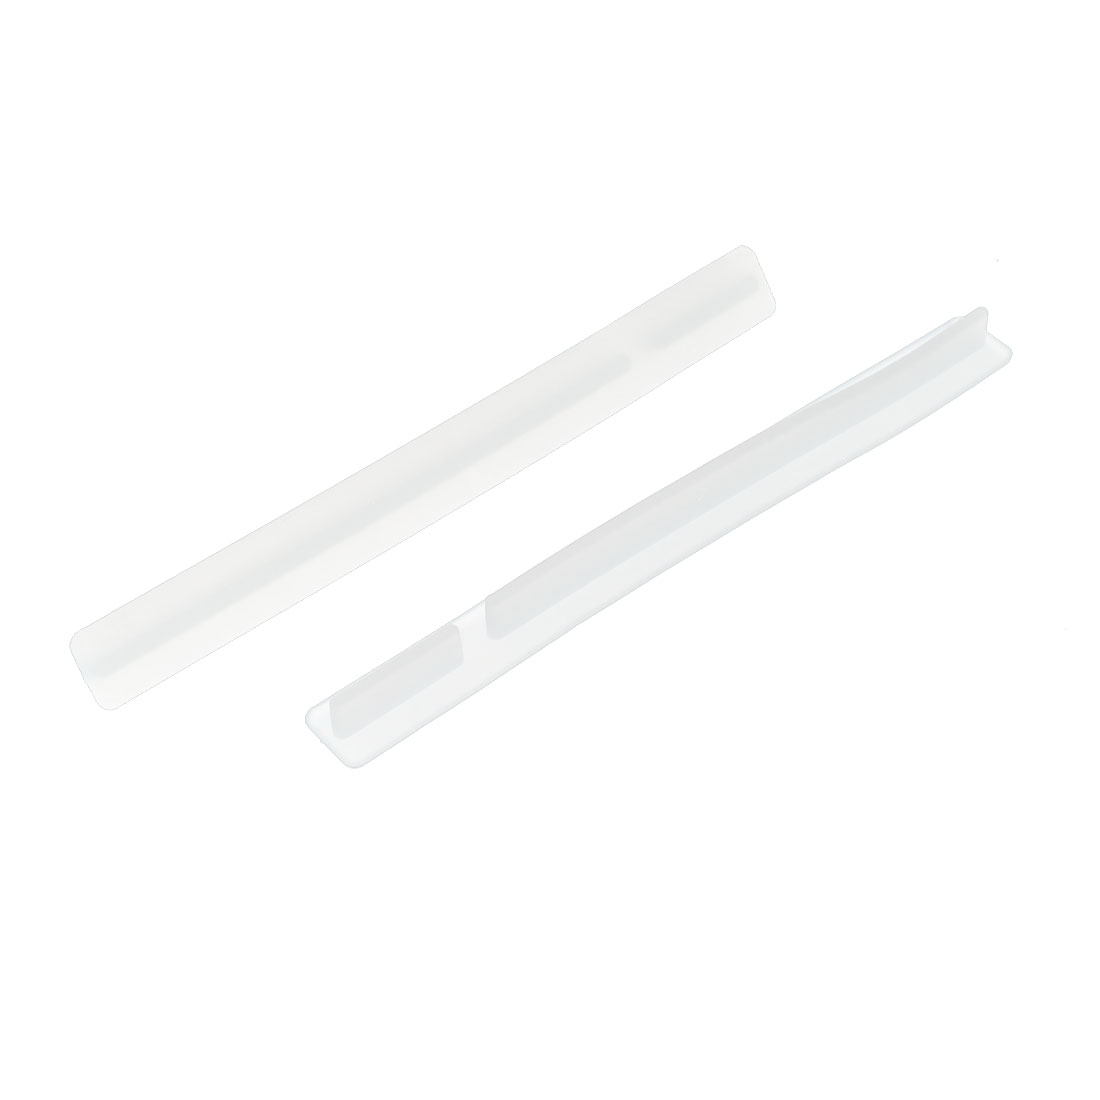 Conventional PCI Slot Silicone Anti Dust Plugs Cover Protector Clear 2PCS